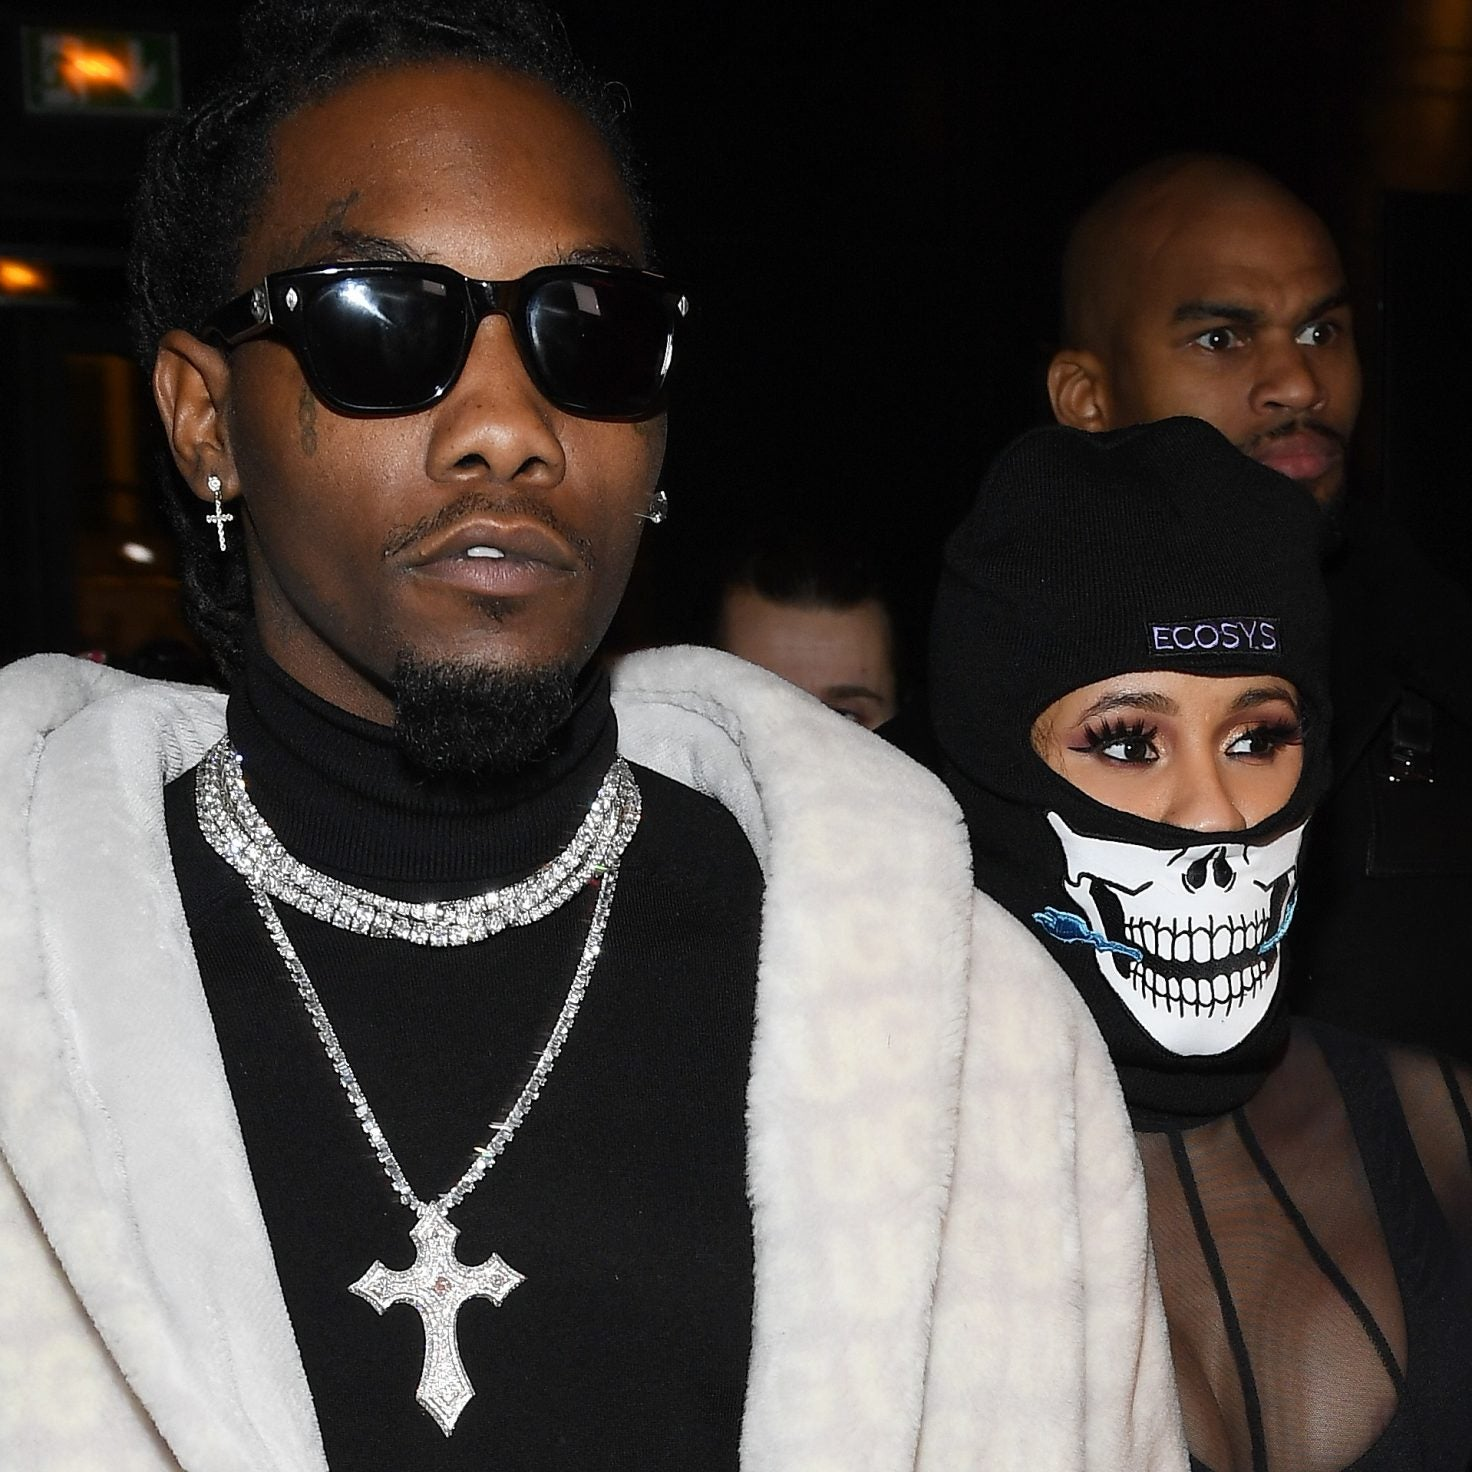 Cardi B And Offset Make An Appearance At Men's Fashion Week In Paris